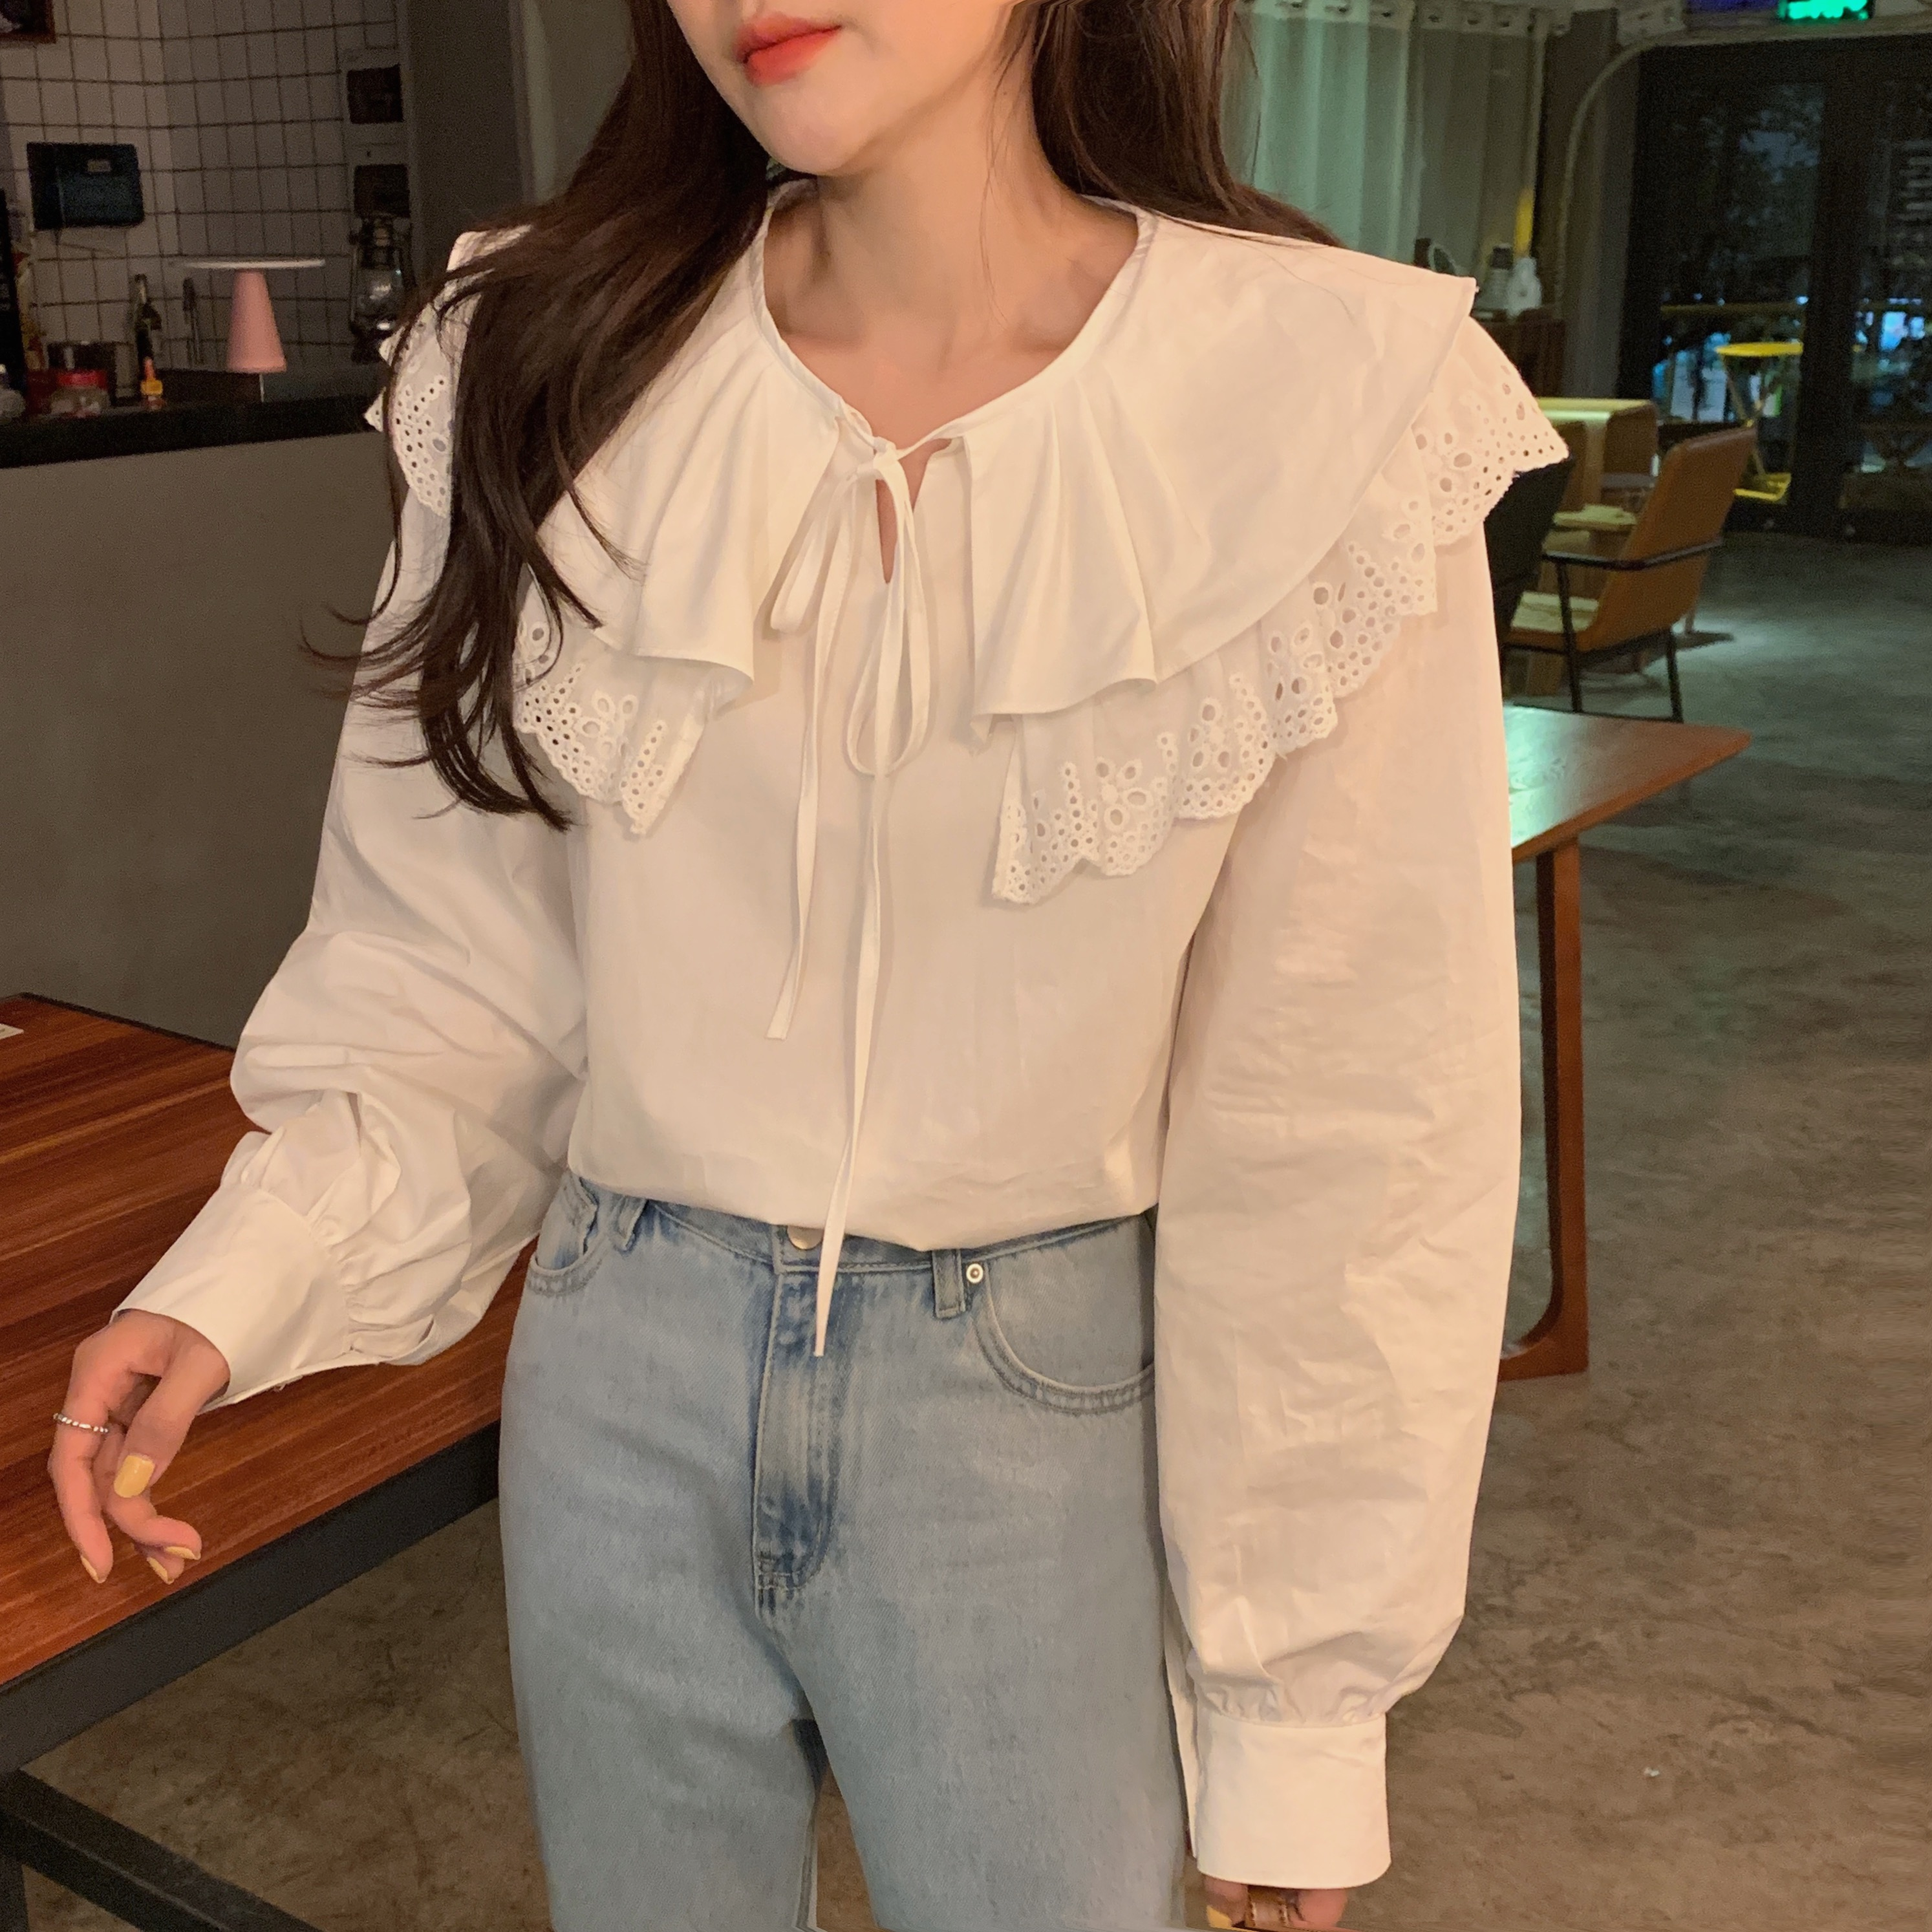 Hde1970420ca447f8acce2e897f987f14z - Spring / Autumn Korean Lace-Up Hollow Out Collar Long Sleeves Loose Solid Blouse